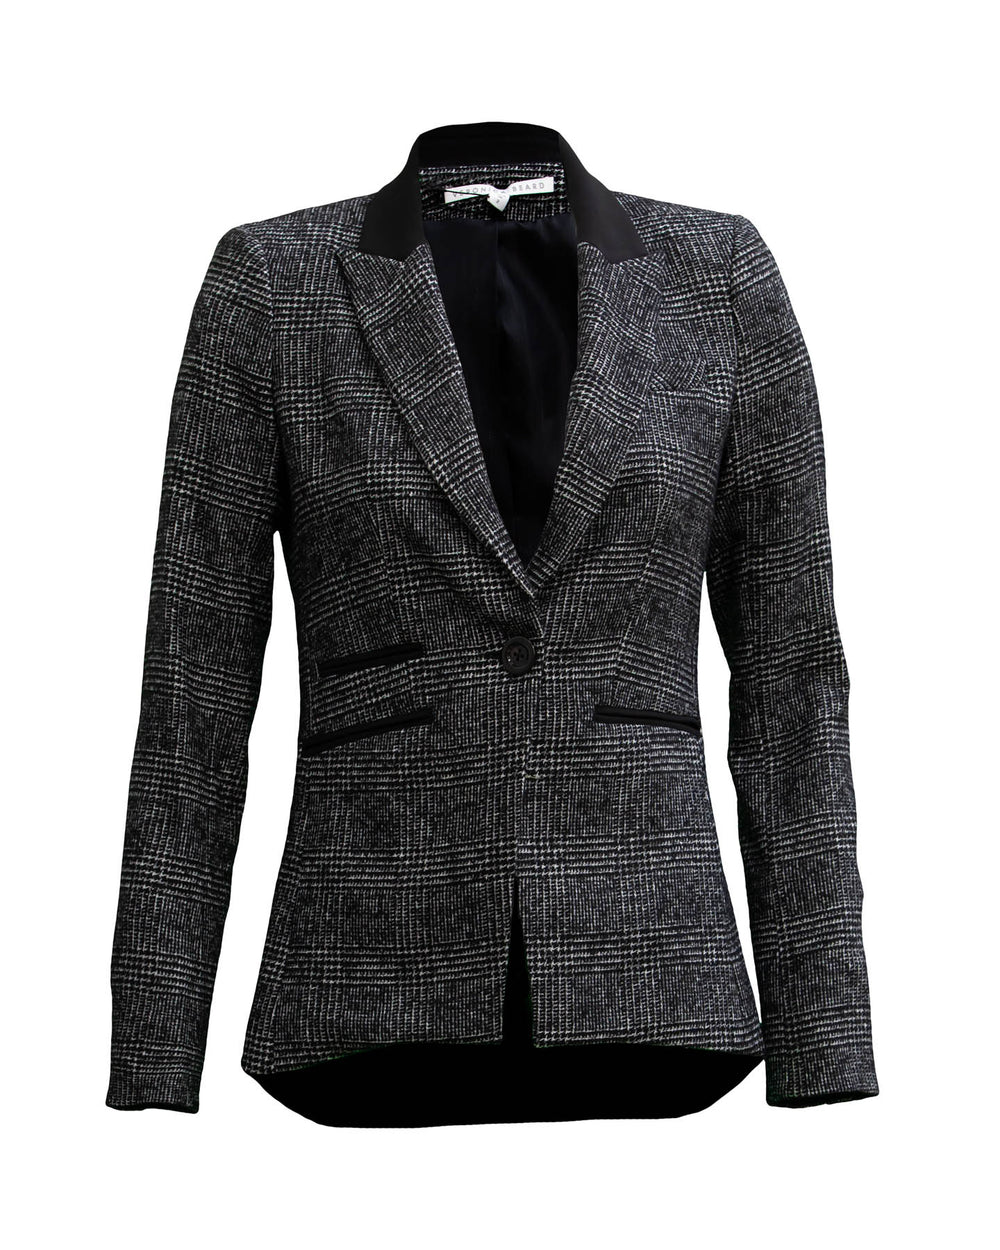 Veronica Beard Gia Dickey Jacket